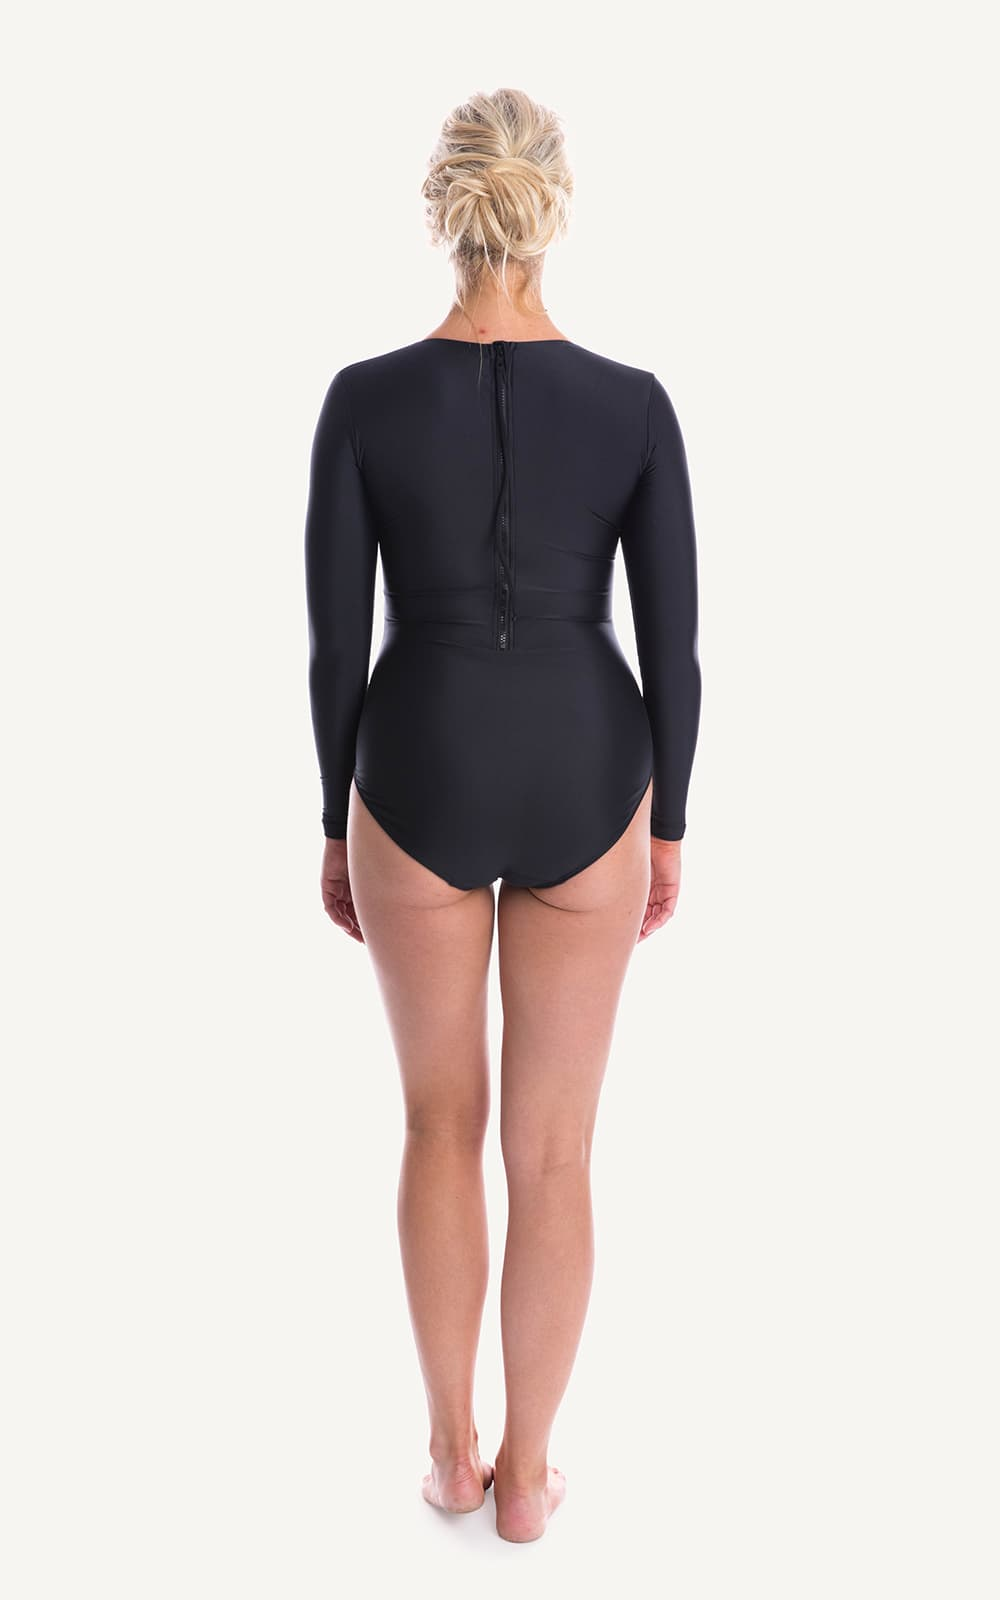 Adore Long Sleeve One Piece Swimsuit | Black